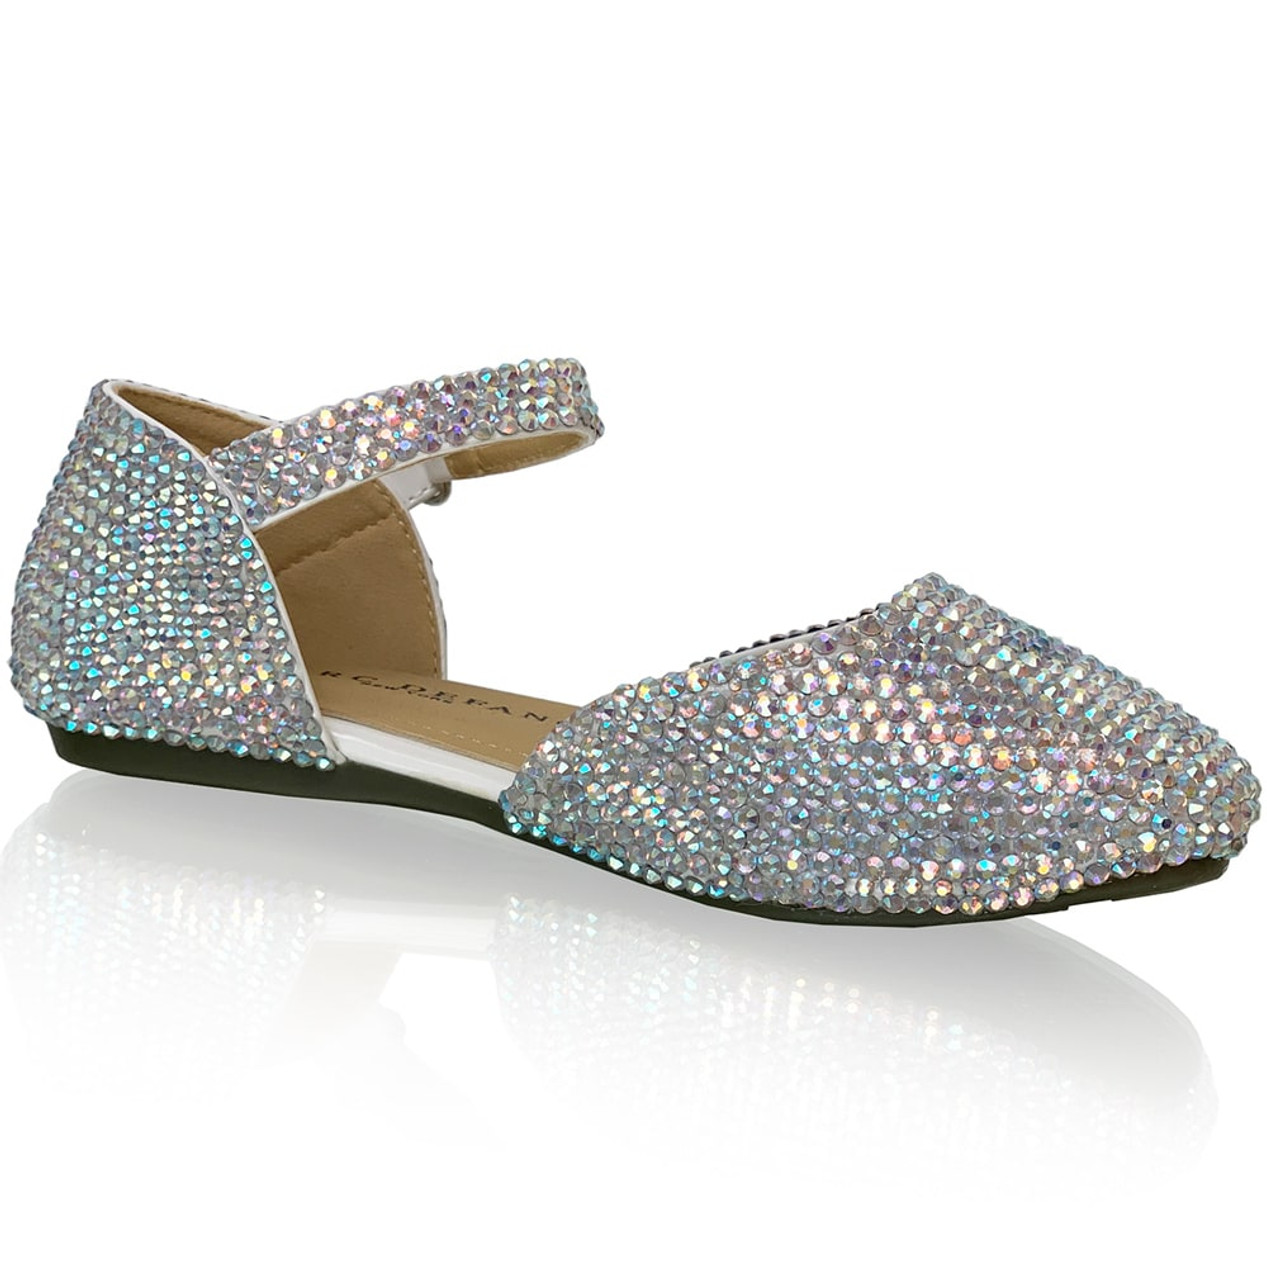 Crystalized Sandal Flats